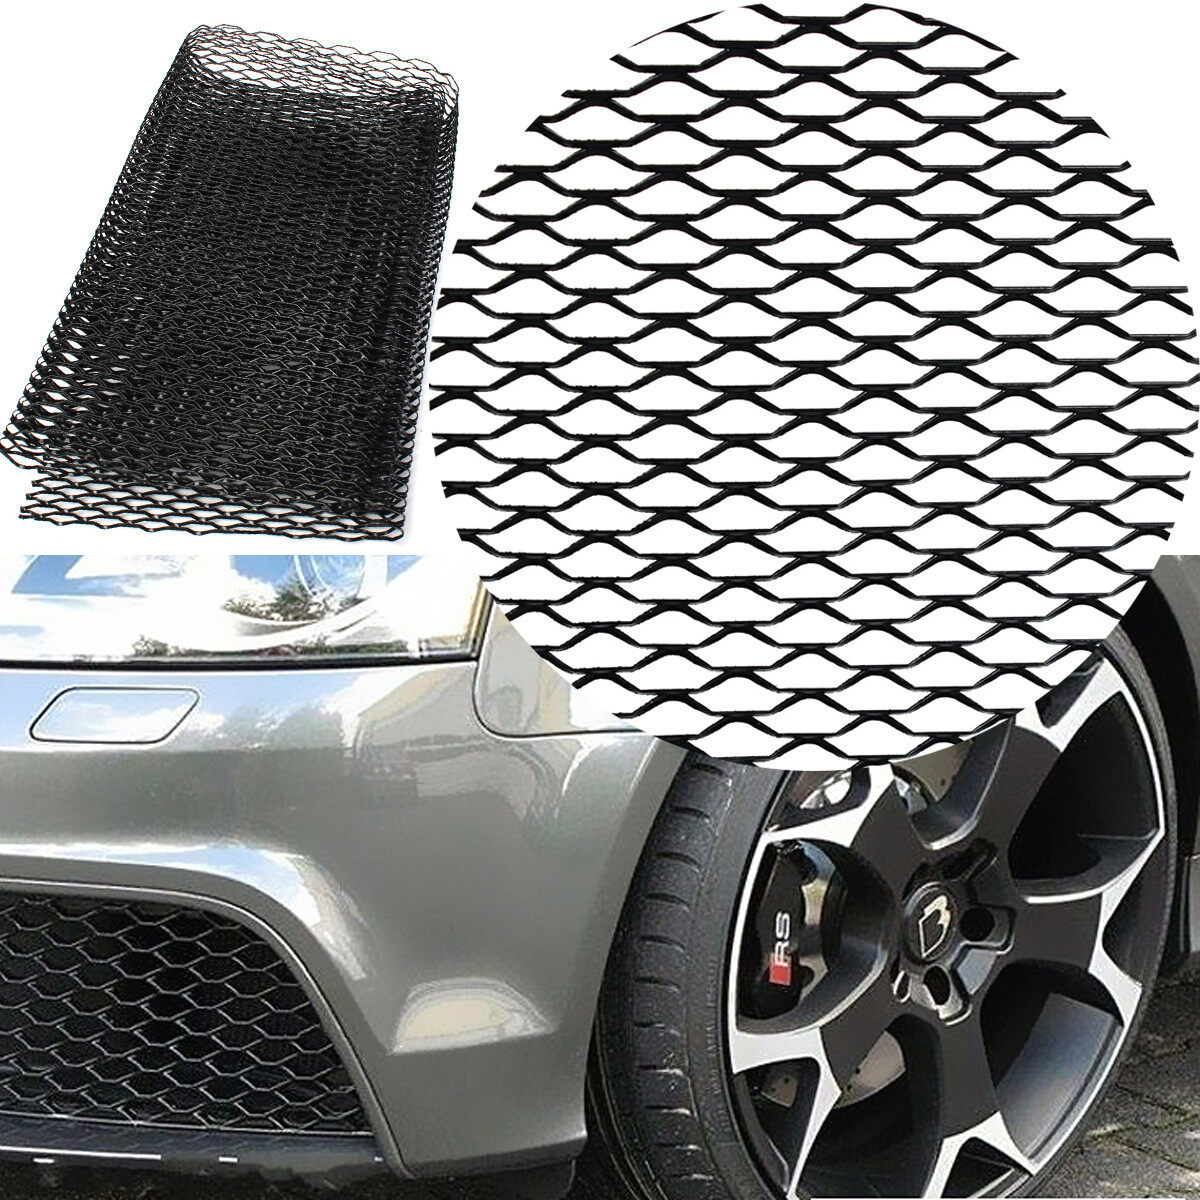 Universal aluminum car vehicle 40 x13 black body grille net mesh grill secti - Grille barbecue 70 x 40 ...